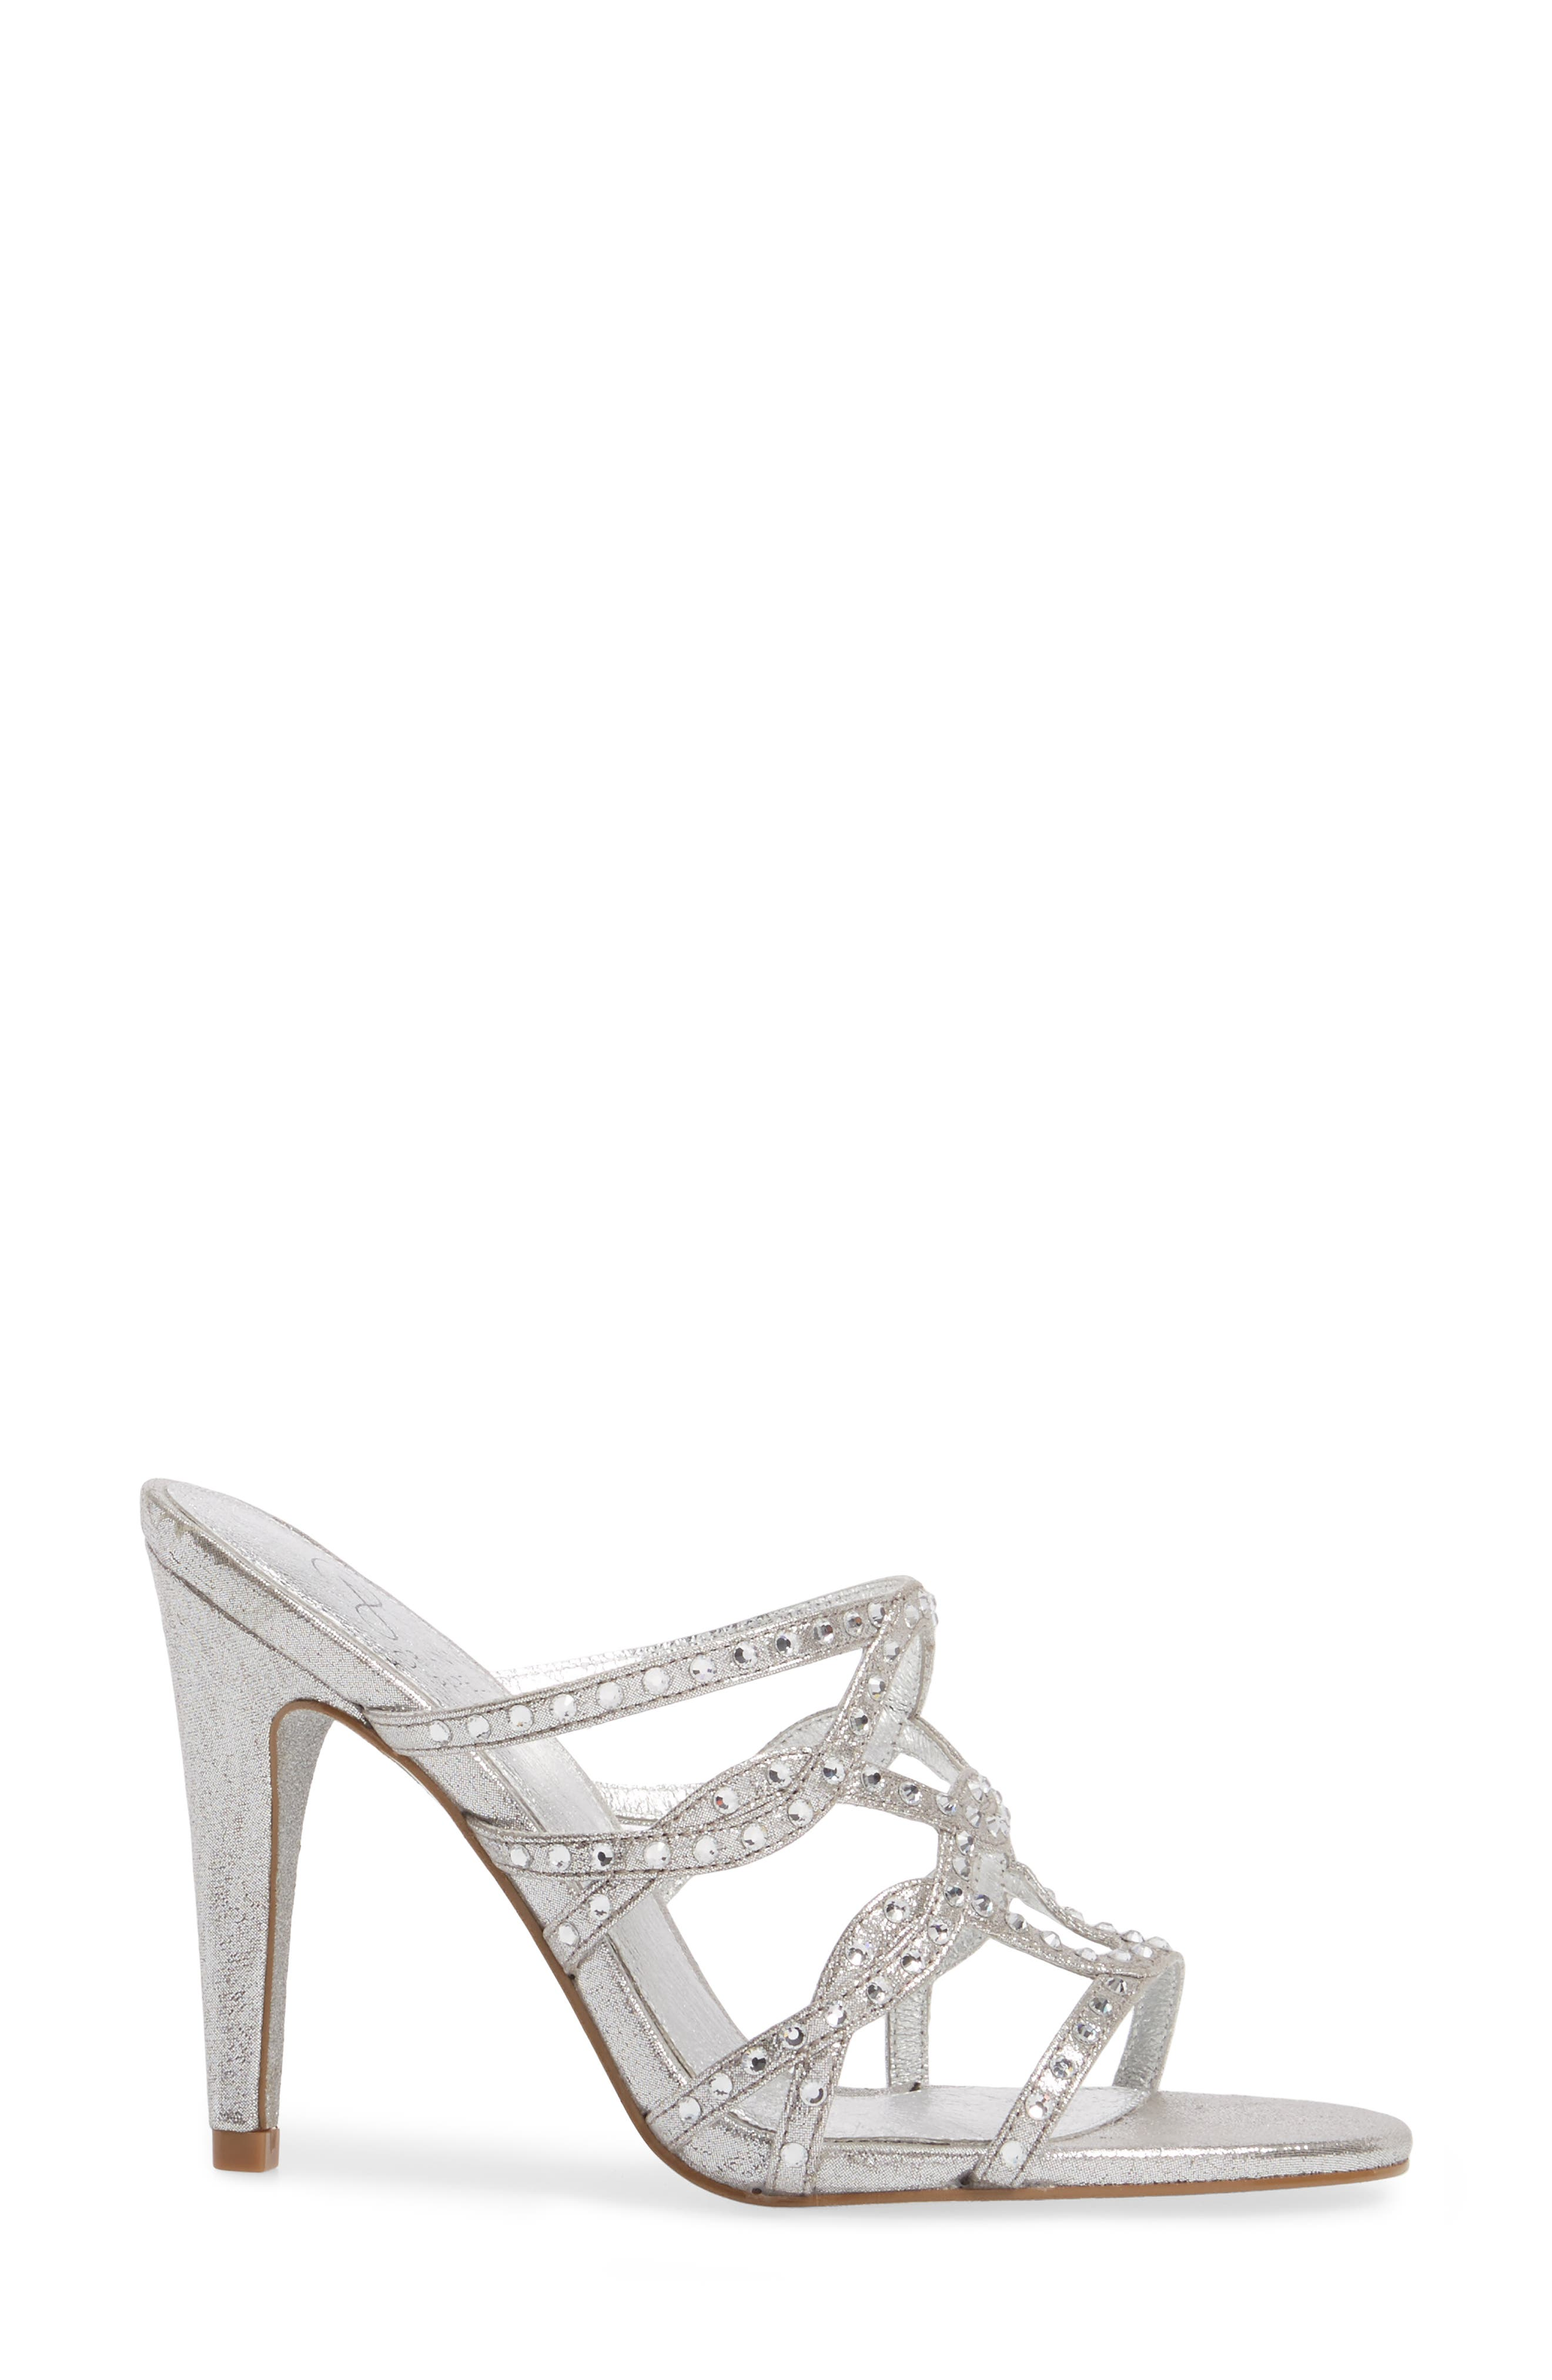 Emma Strappy Sandal,                             Alternate thumbnail 3, color,                             Silver Fabric